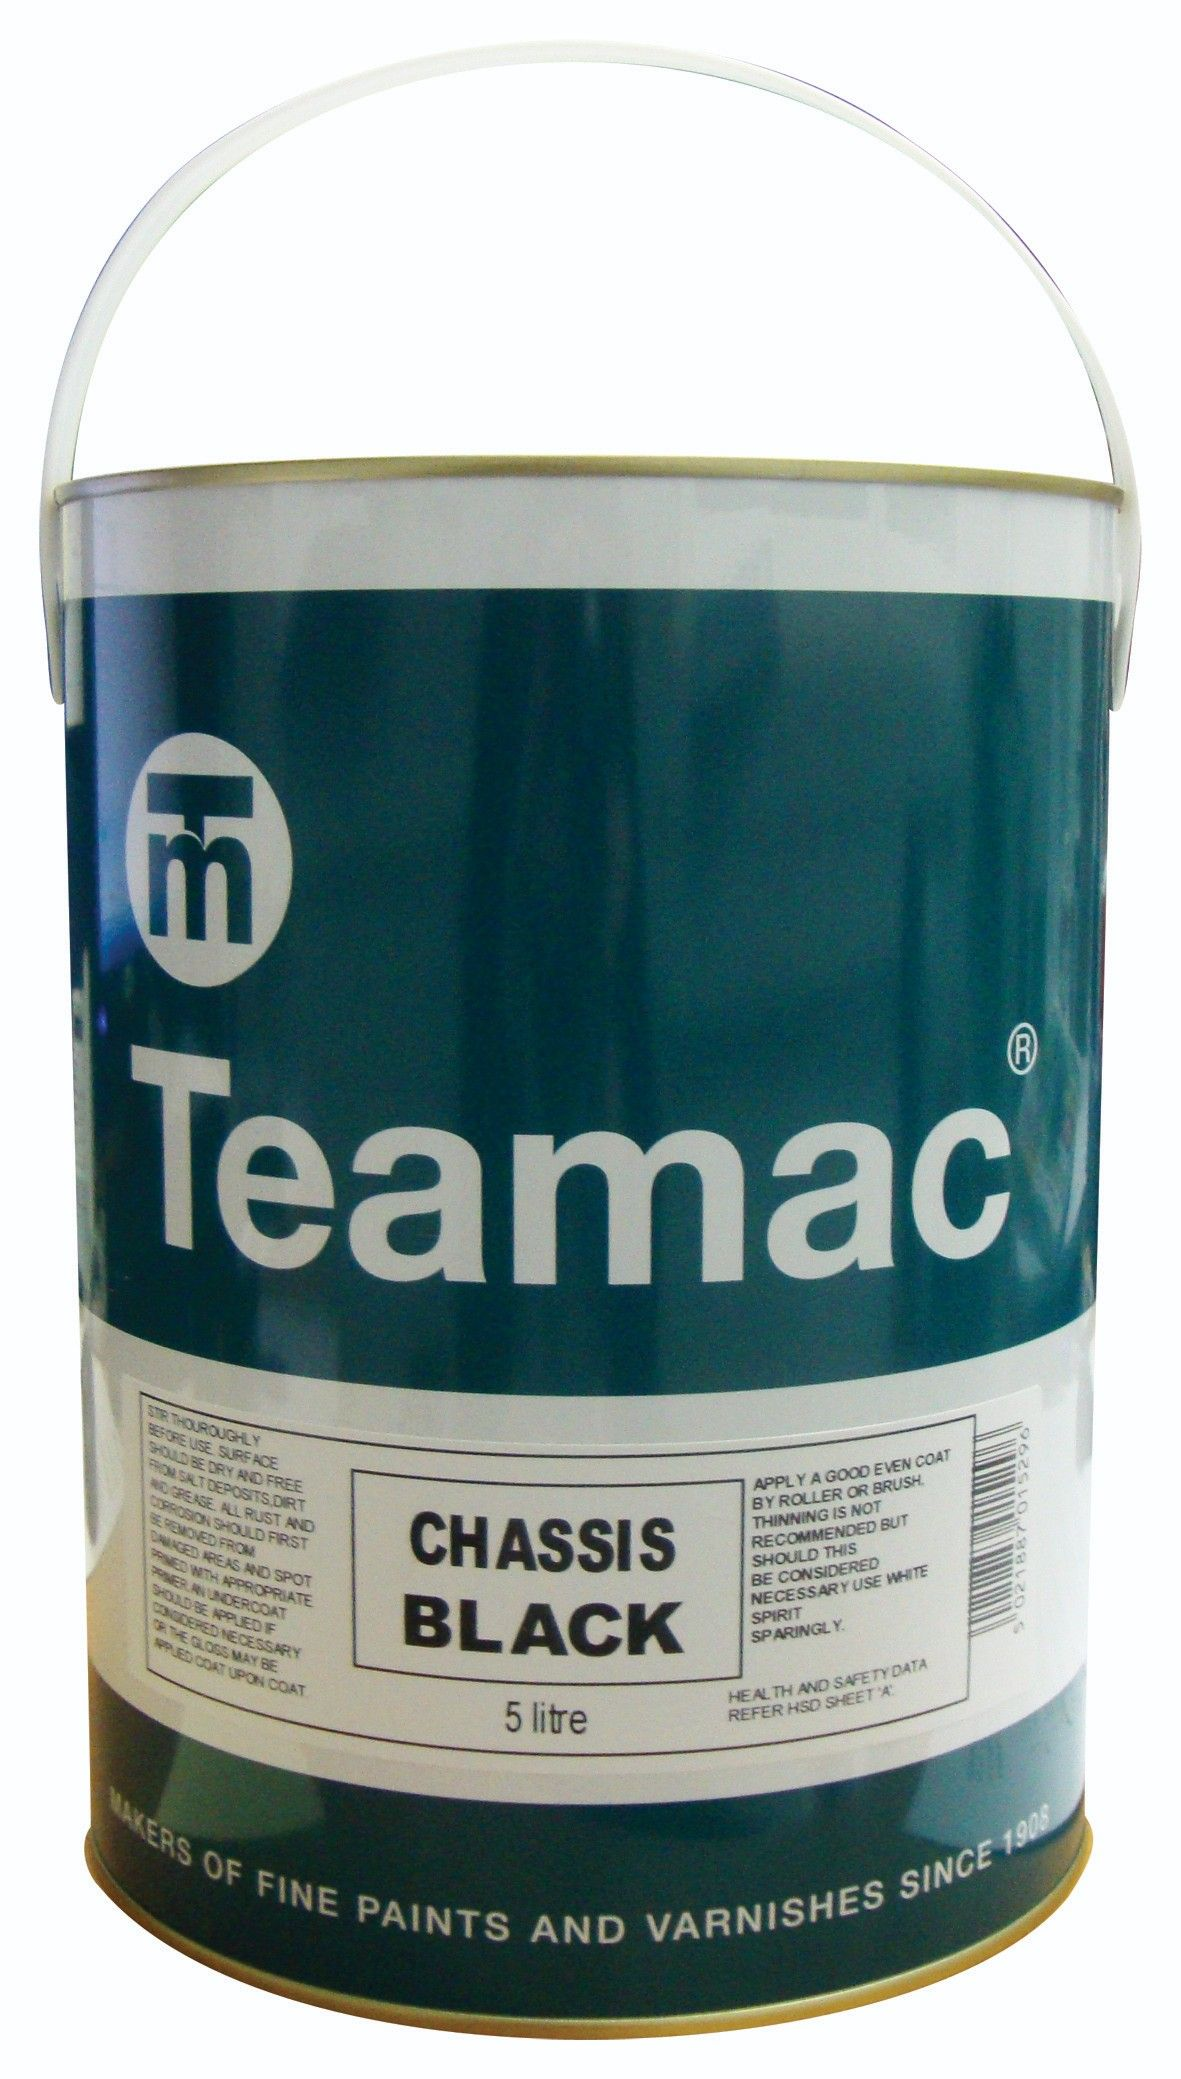 Looking for the best chassis paint to use on your car